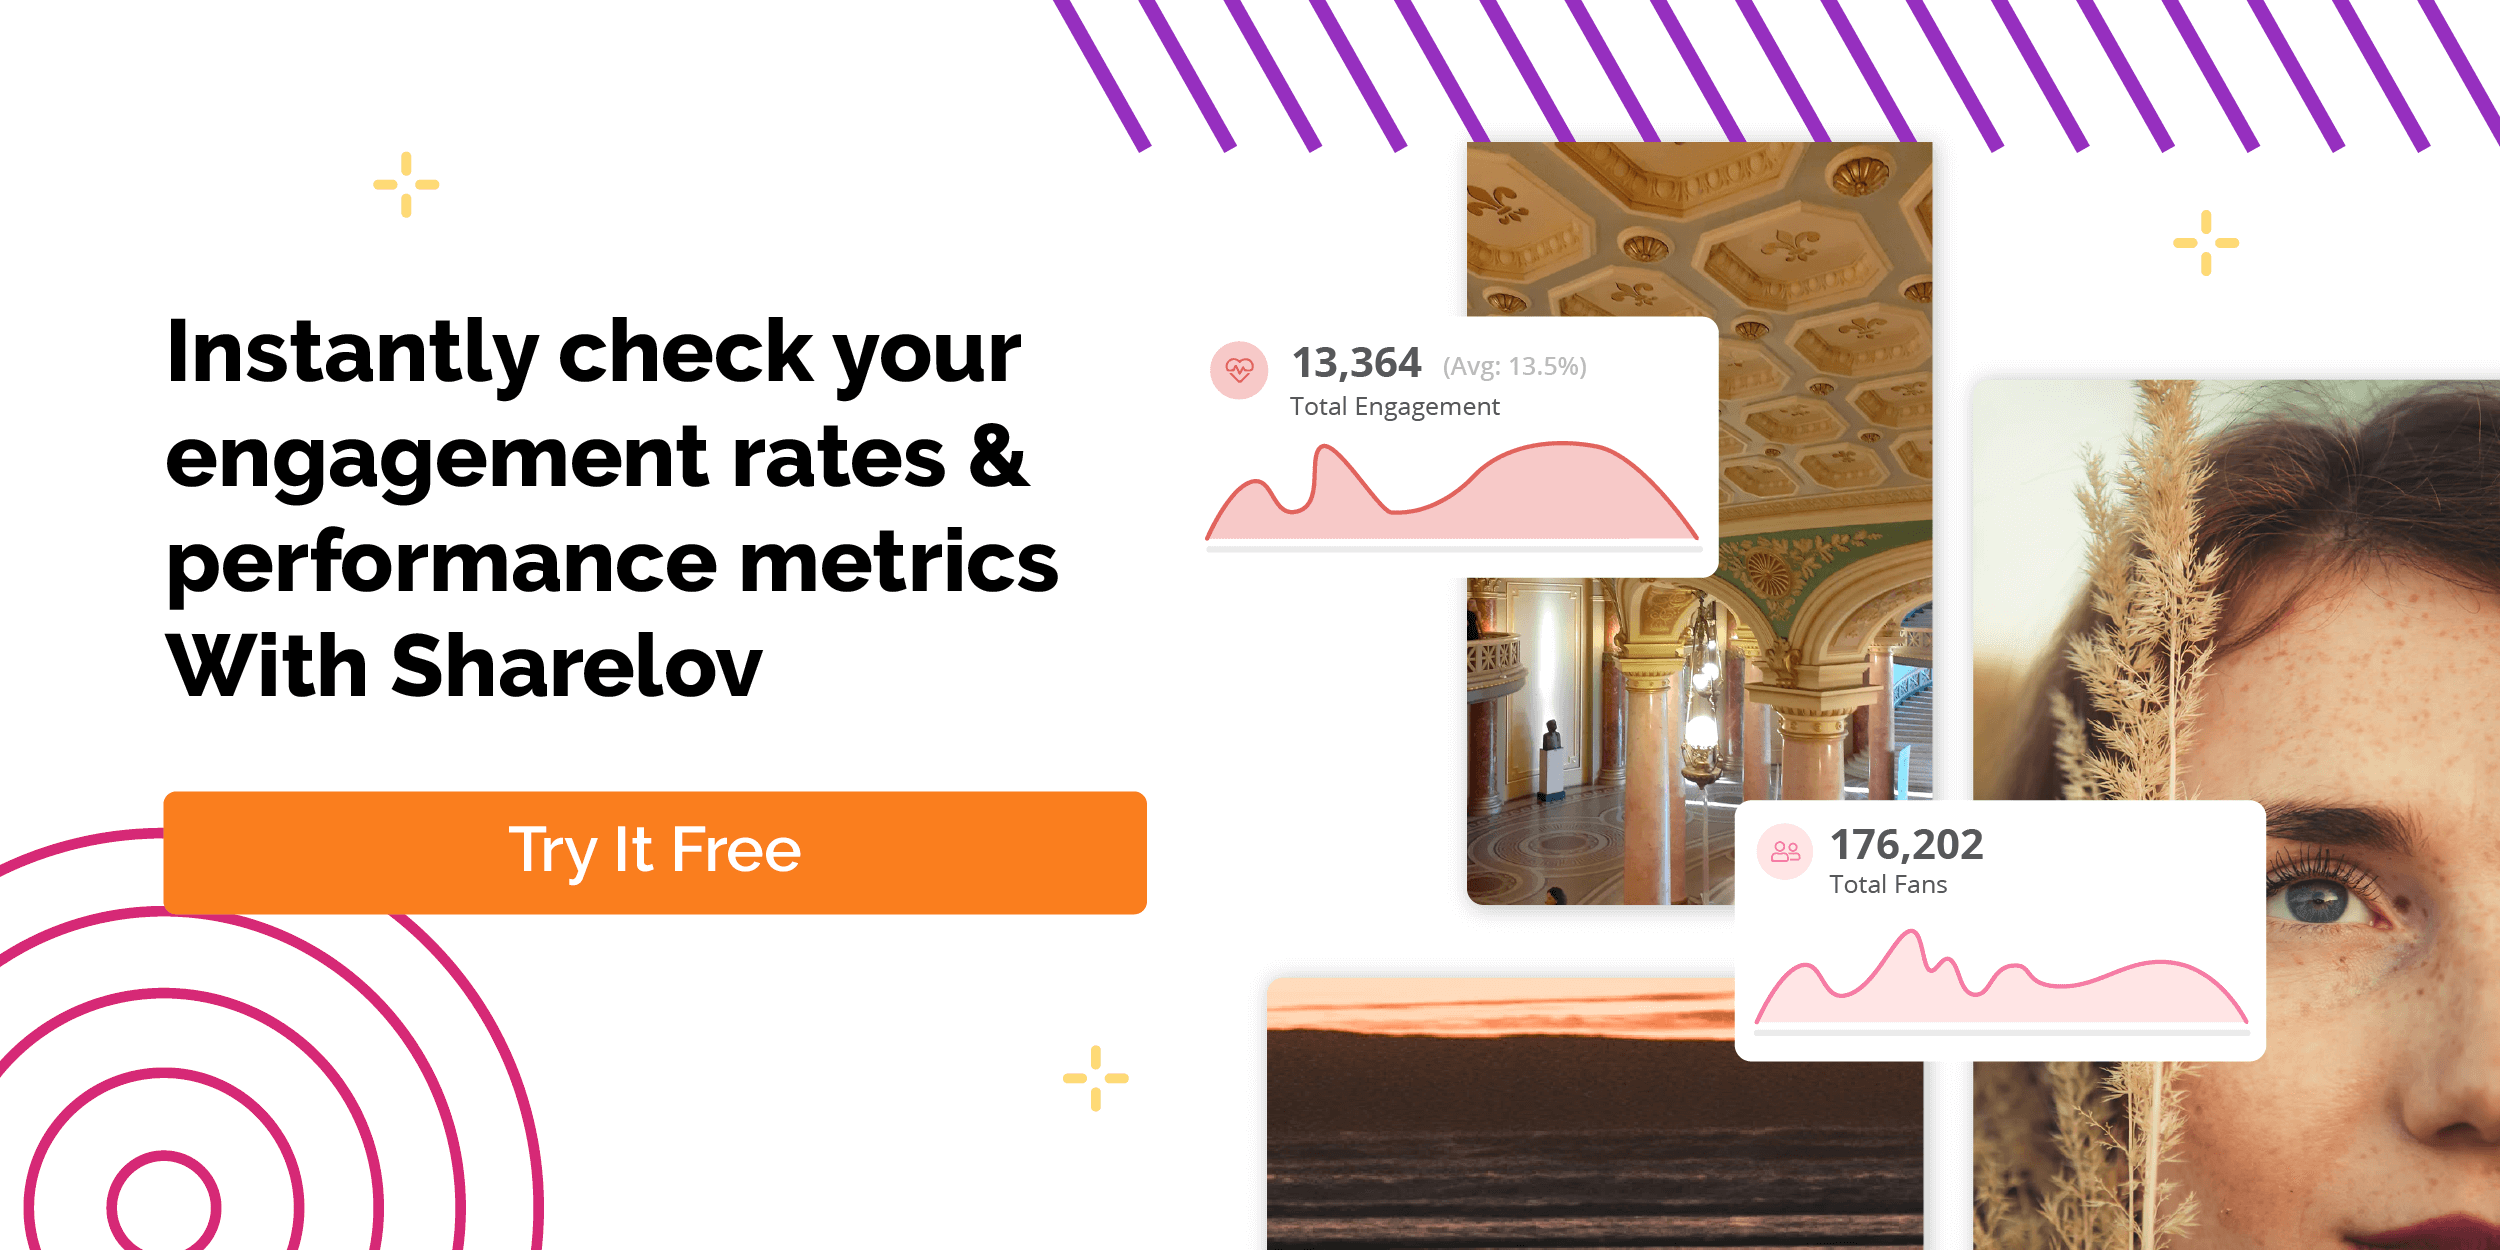 Instantly check your engagement rates & performance metrics